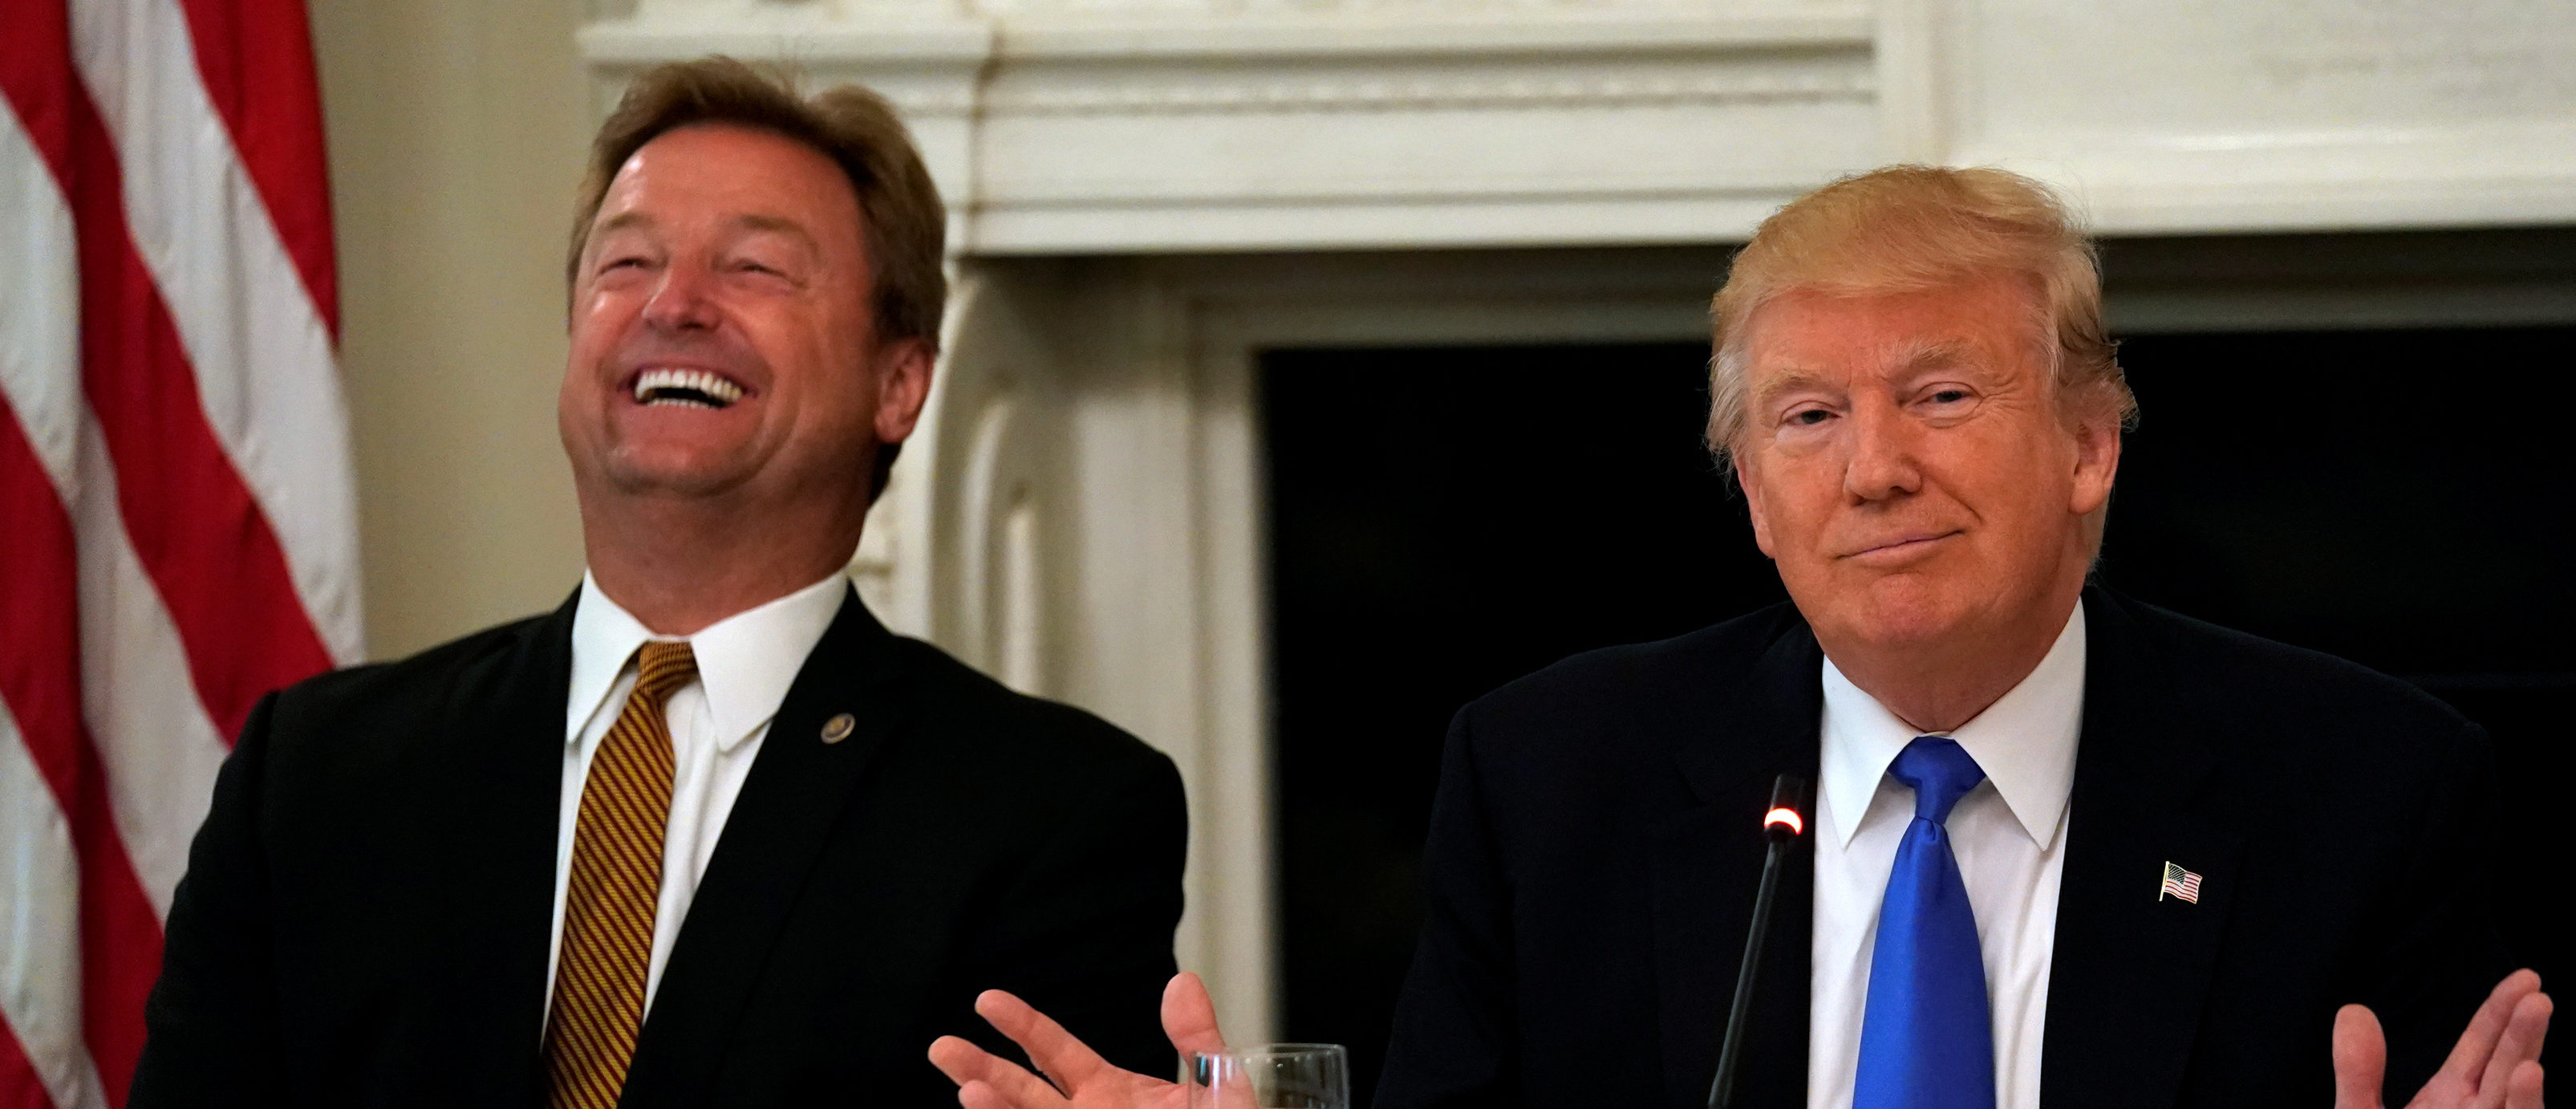 Senator Dean Heller (R-NV) reacts as U.S. President Donald Trump speaks during a lunch meeting with Senate Republicans to discuss healthcare at the White House in Washington, U.S., July 19, 2017. REUTERS/Kevin Lamarque - RTX3C478